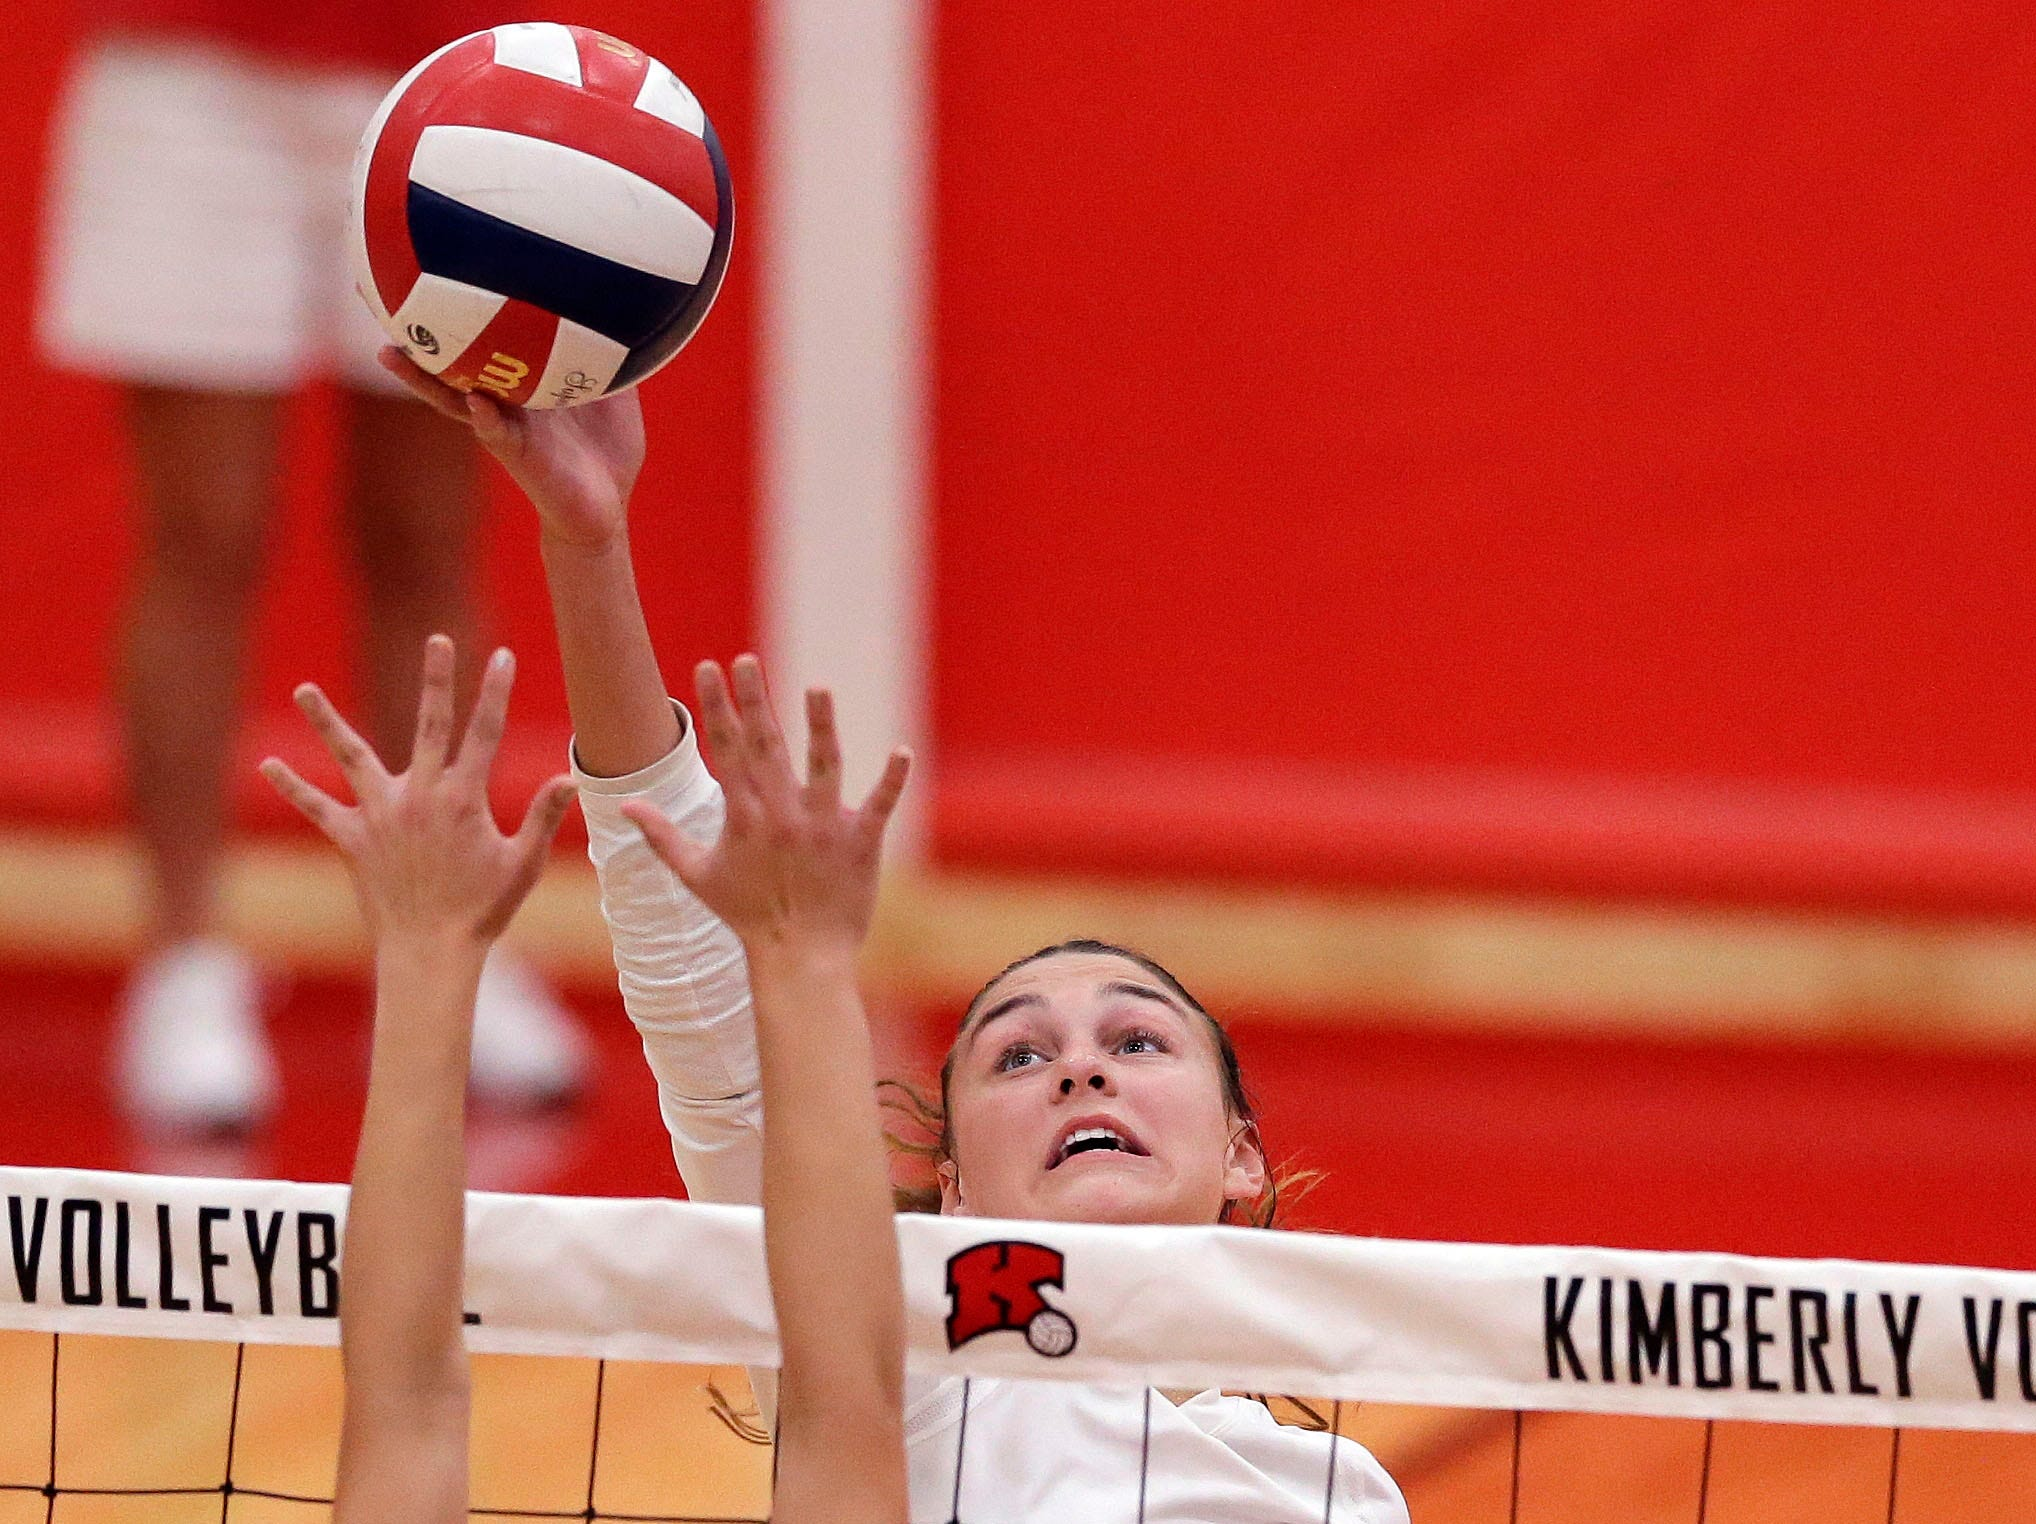 Maggie Cartwright of Kimberly gets above Leah Schlafman of Neenah in FVA girls volleyball Tuesday, September 11, 2018, at Kimberly High School in Kimberly, Wis.Ron Page/USA TODAY NETWORK-Wisconsin